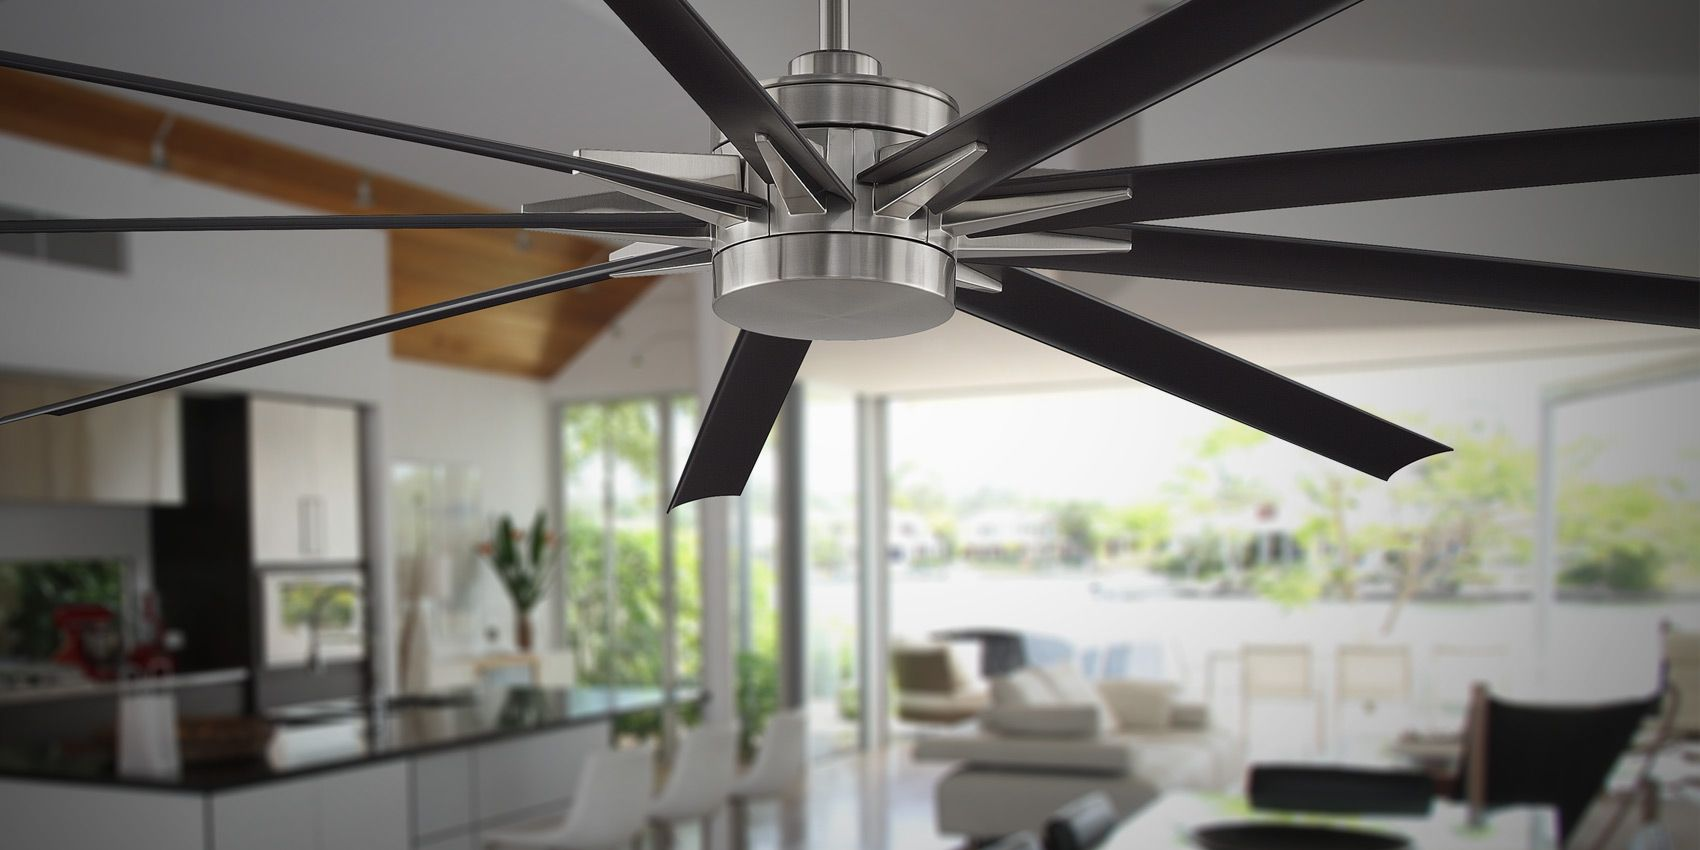 Ceiling Fan Sale Personal Service And Low Prices At Louie Lighting Ceiling Fan Fans For Sale Matthews Fans